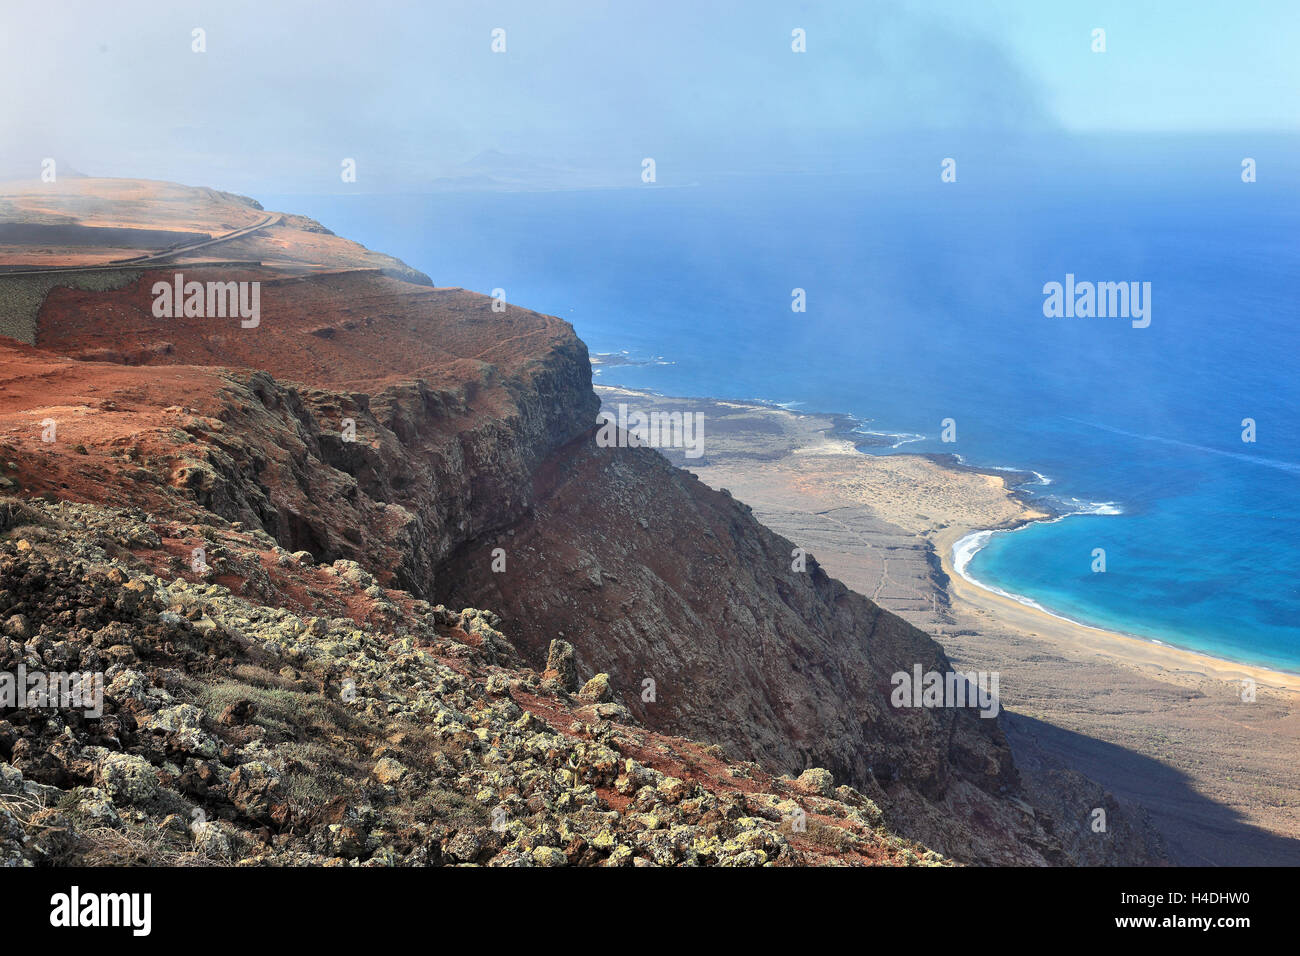 Mirador del Río, an architecturally attractive lookout in the extreme north Lanzarote, Canary islands, Spain - Stock Image